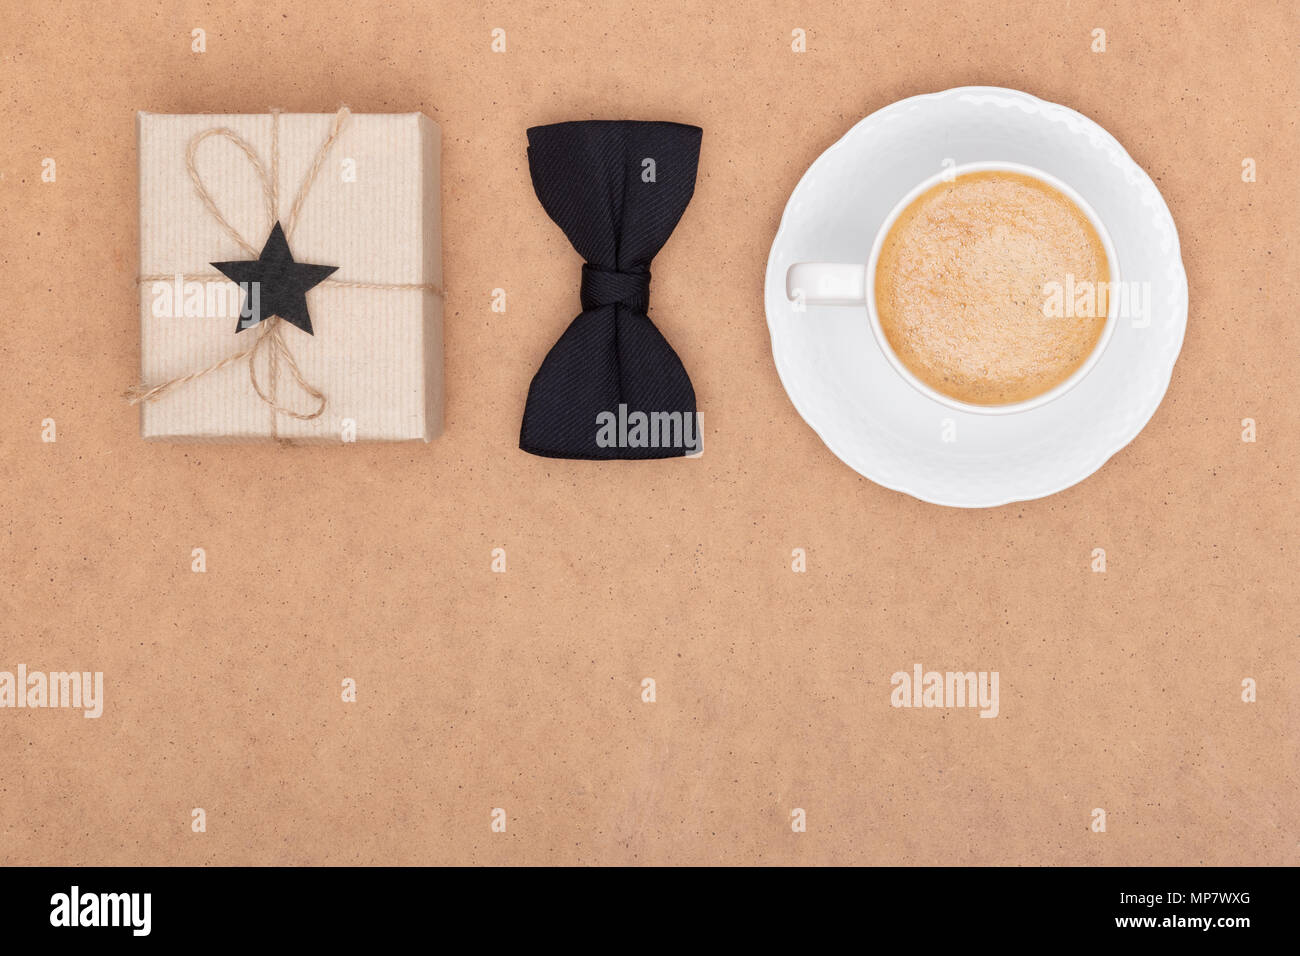 Happy Father's Day Background. Cup of coffee, beautiful present and black bow tie on brown background flat lay. Fathers day still life setup. - Stock Image